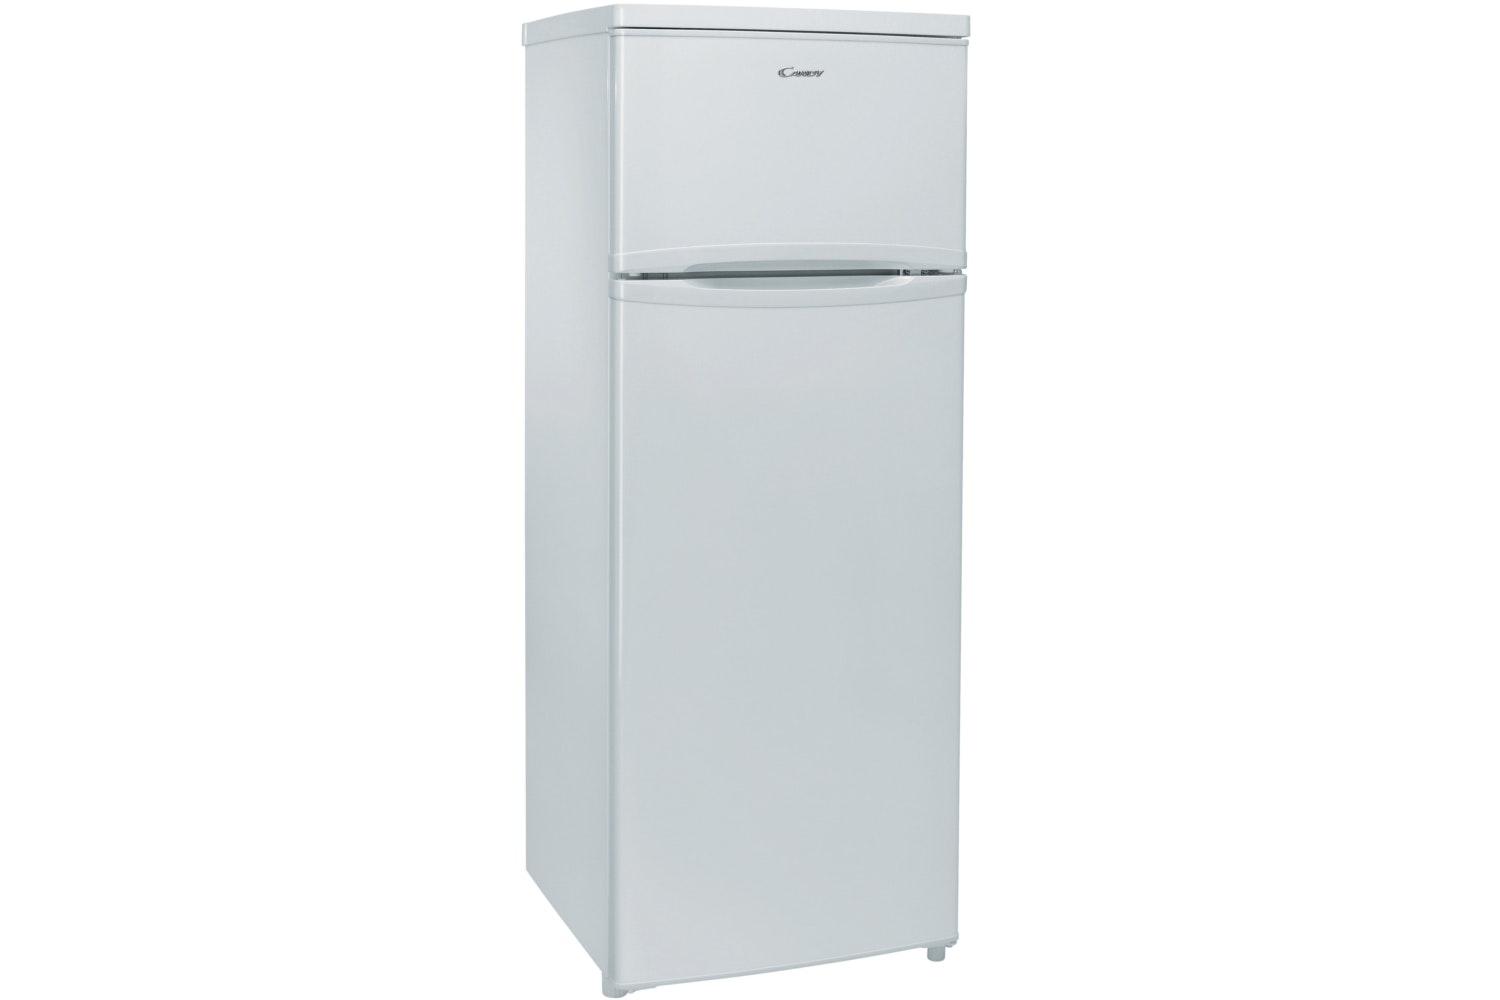 Candy Fridge Freezer | CTSE5142W